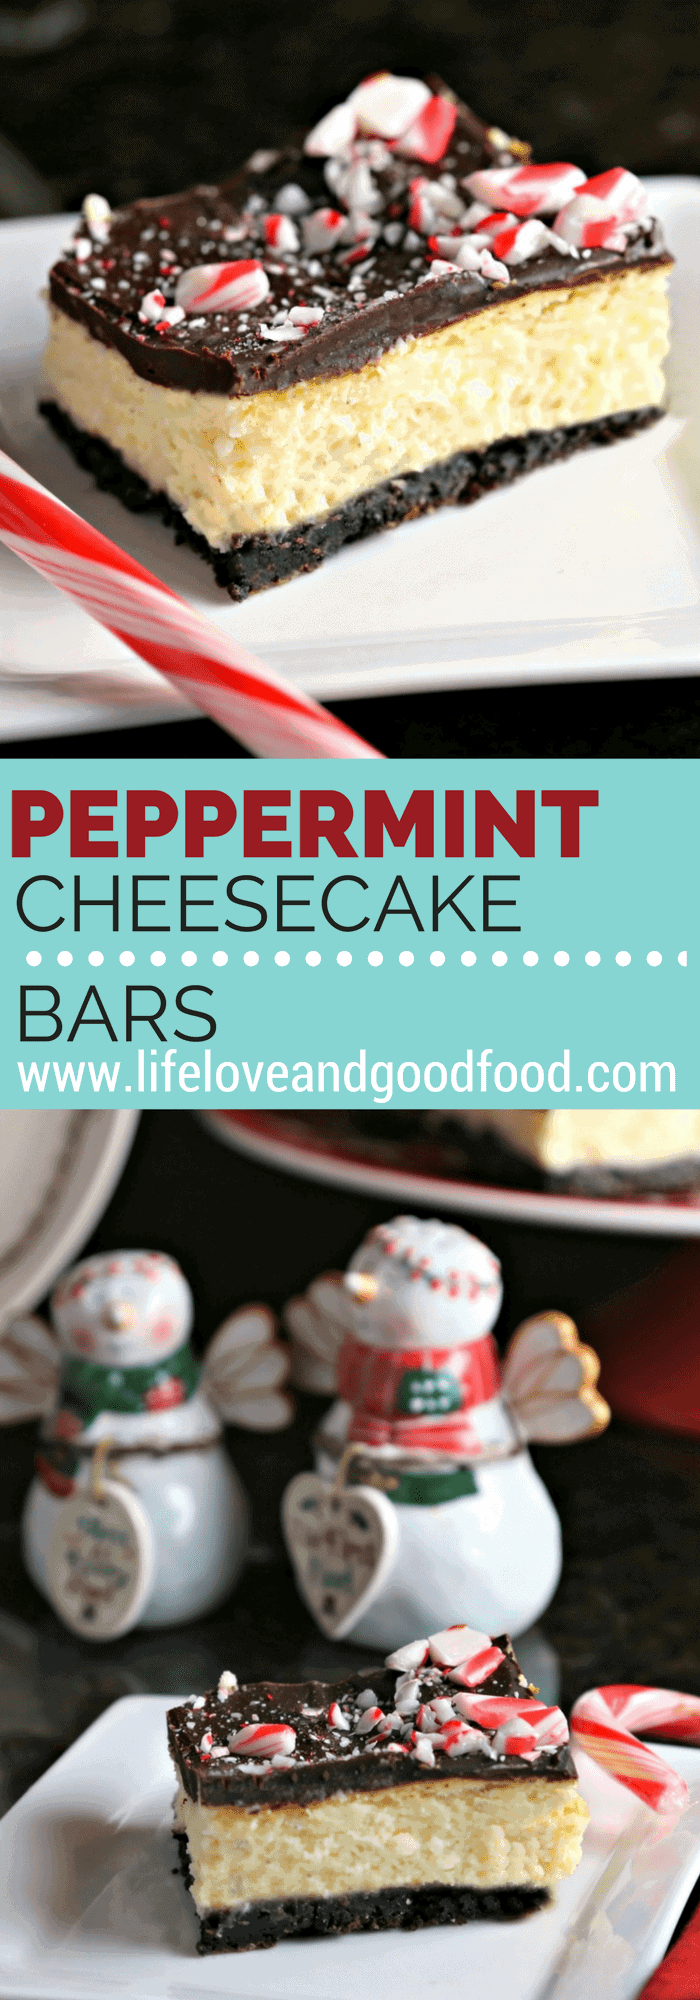 Peppermint Cheesecake Bars   Life, Love, and Good Food